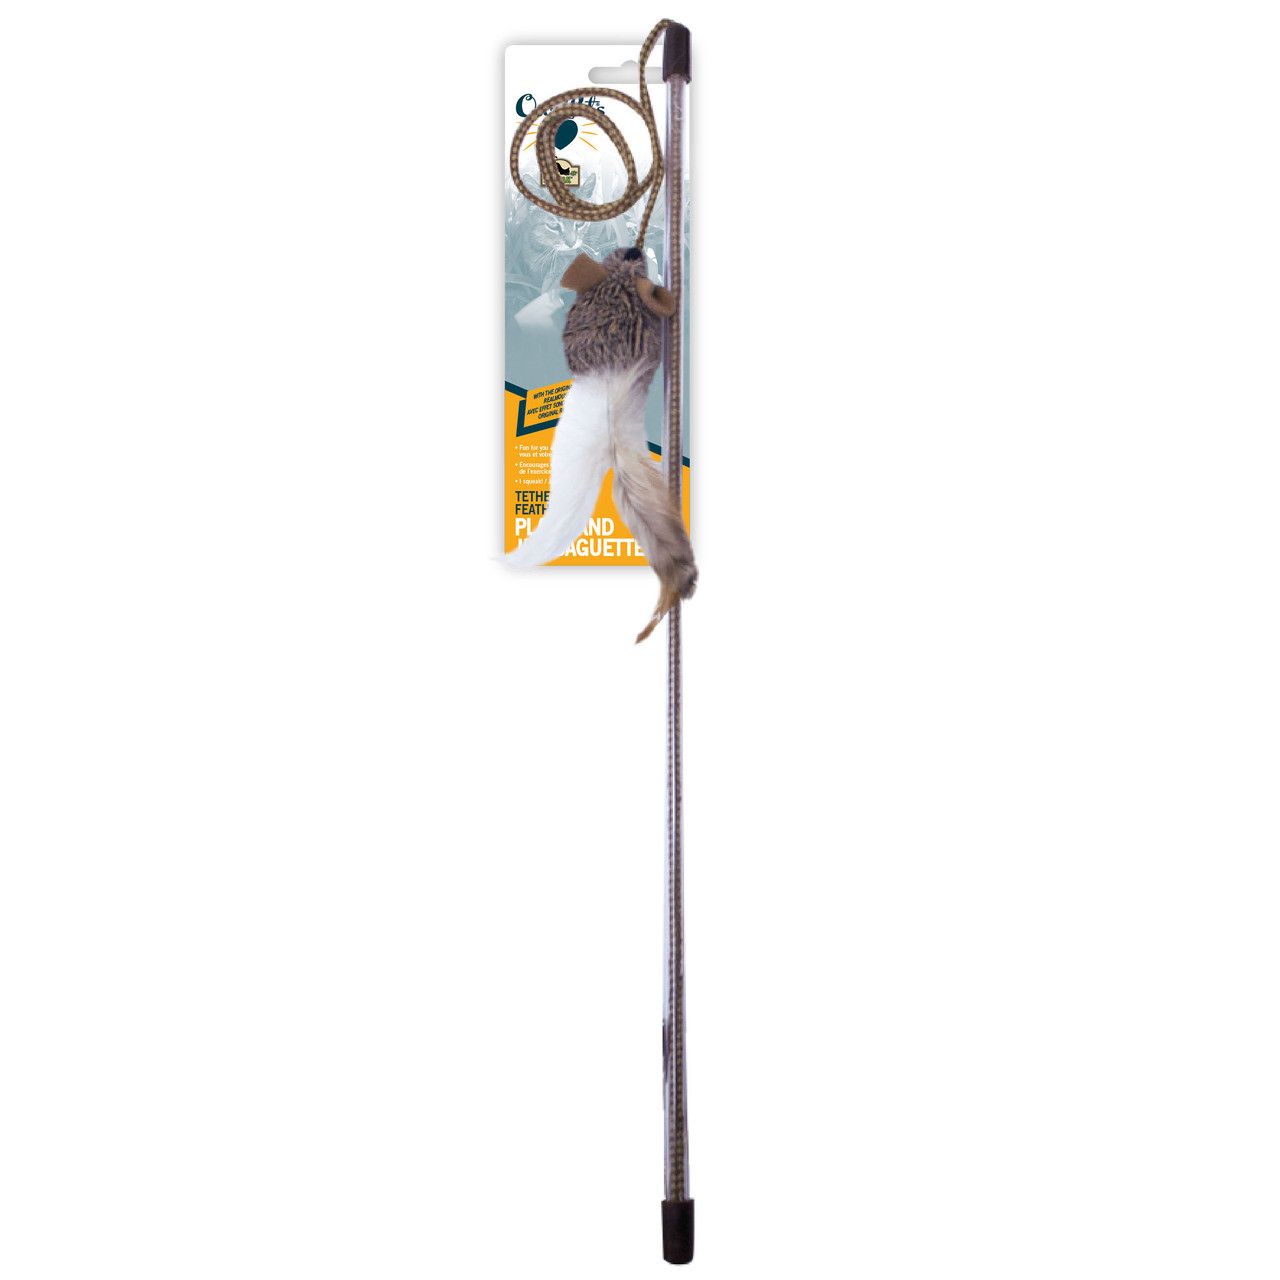 OurPets Play-N-Squeak Tethered and Feathered Cat Wand Toy